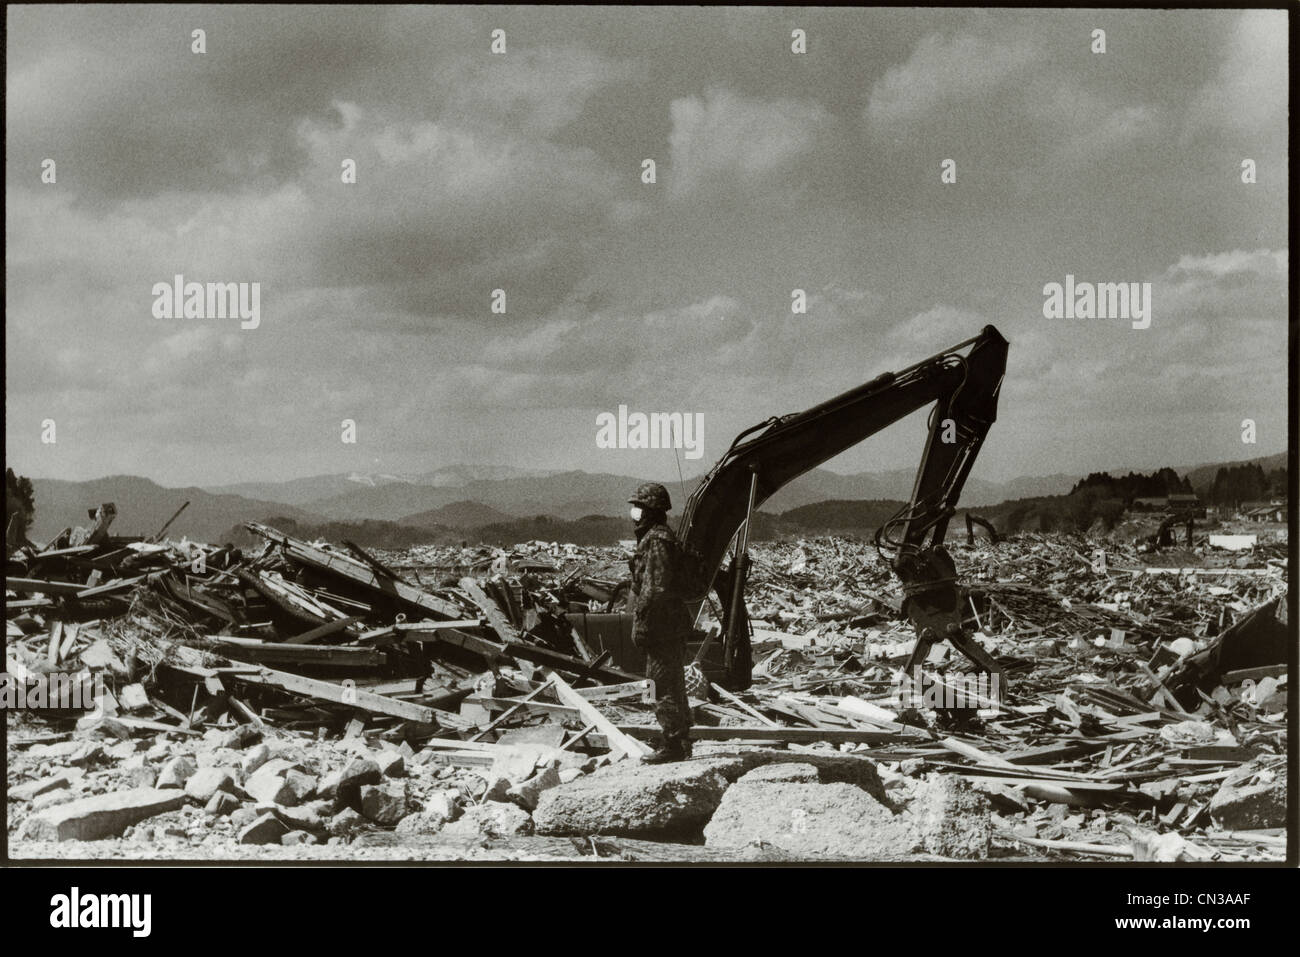 Rikuzentakata, Japan- 20th March 2011: Soldier amongst debris in aftermath of the 2011 Tohoku Earthquake and Tsunami - Stock Image